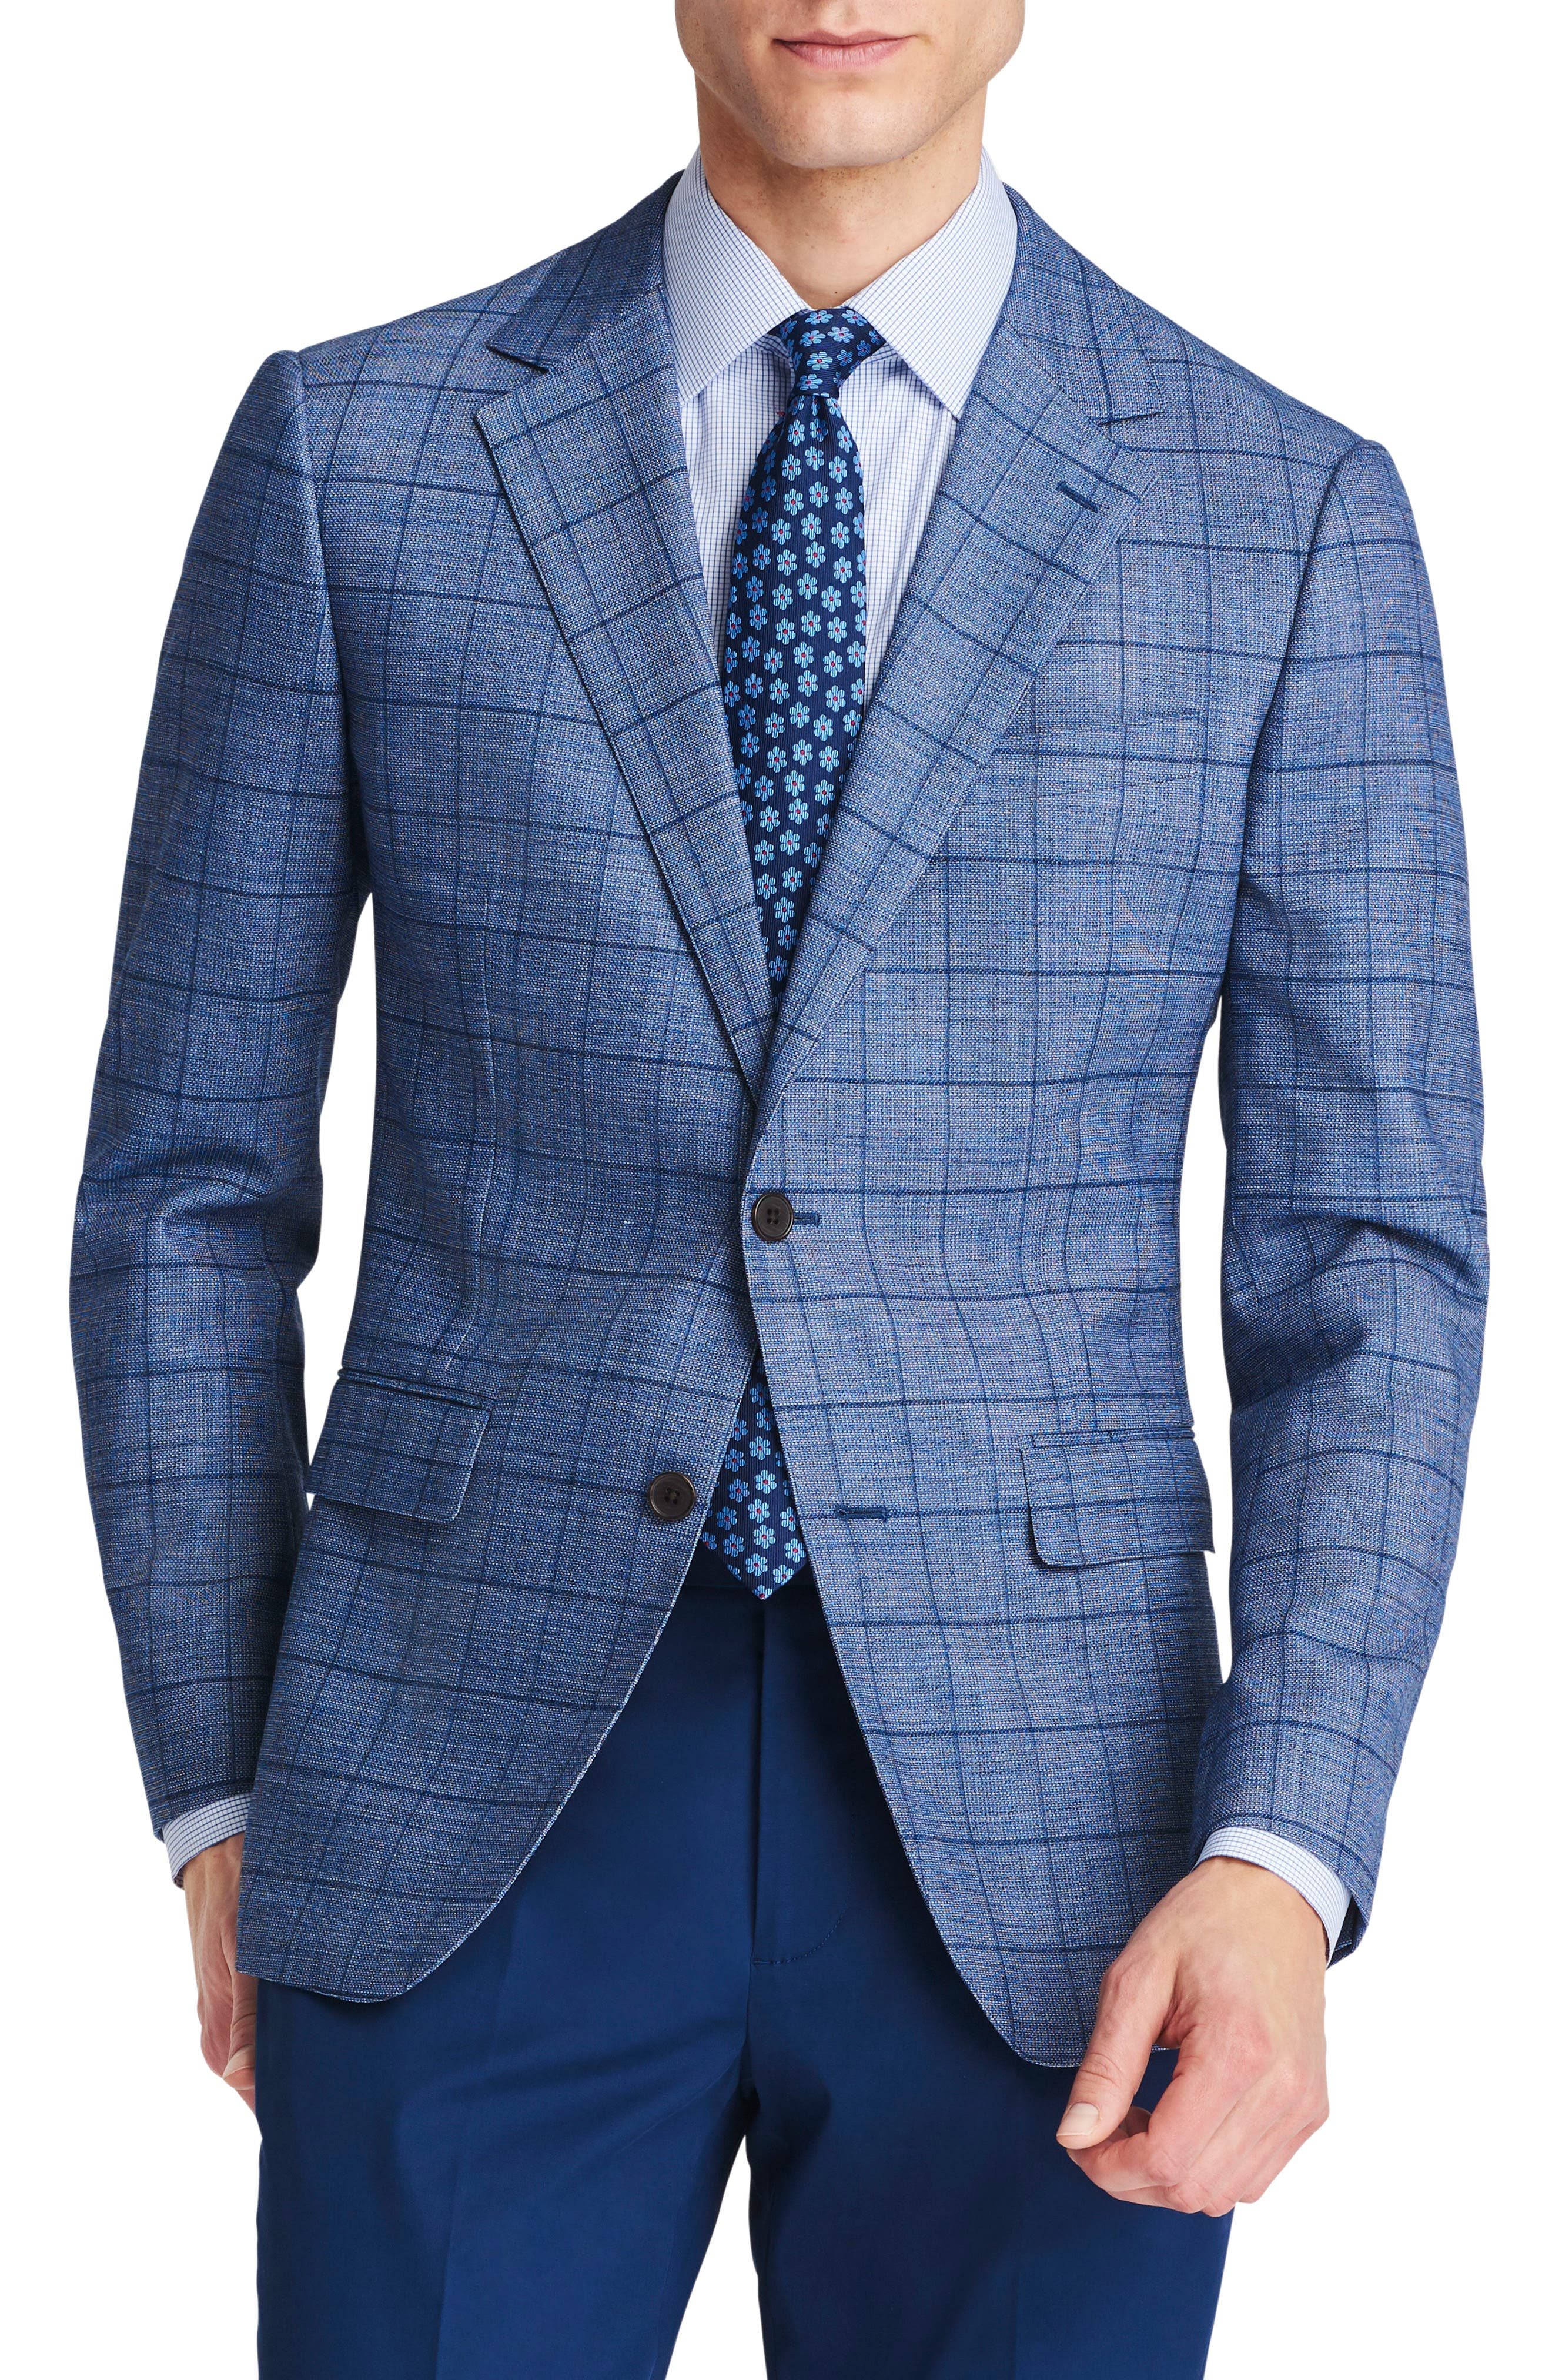 Jetsetter Slim Fit Stretch Wool Blazer,                         Main,                         color,